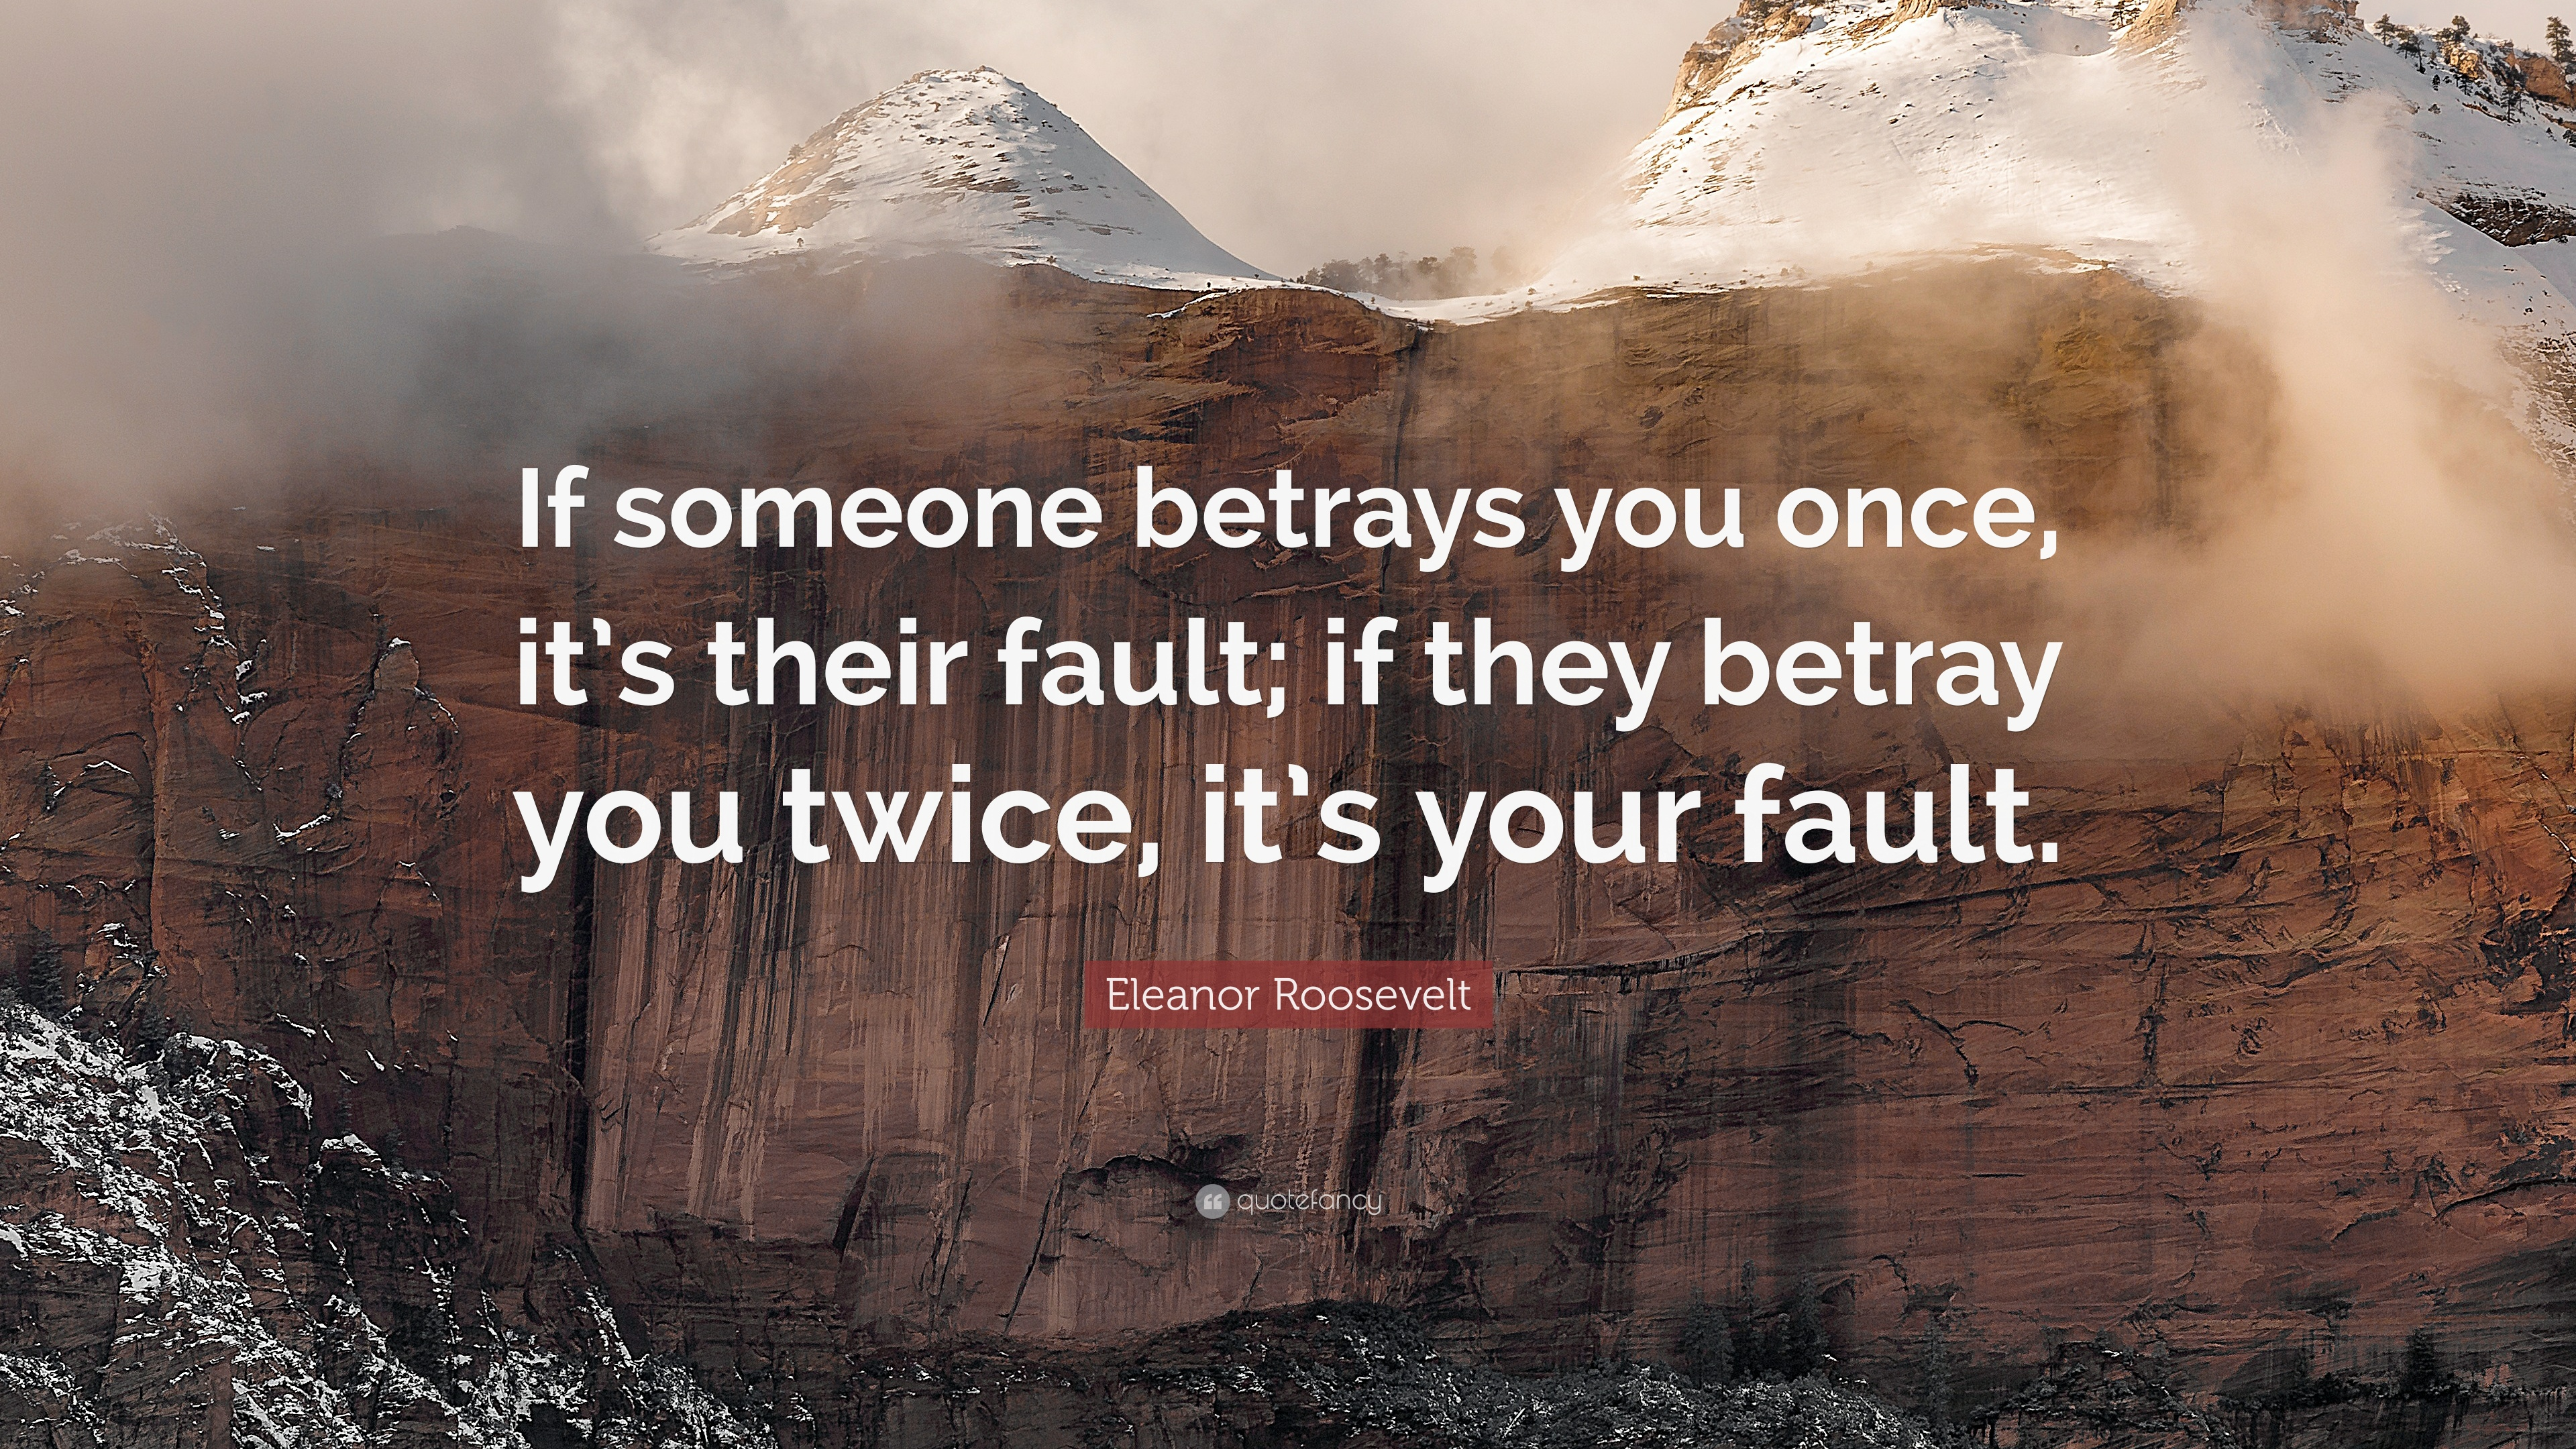 Eleanor Roosevelt Quote: If someone betrays you once, it